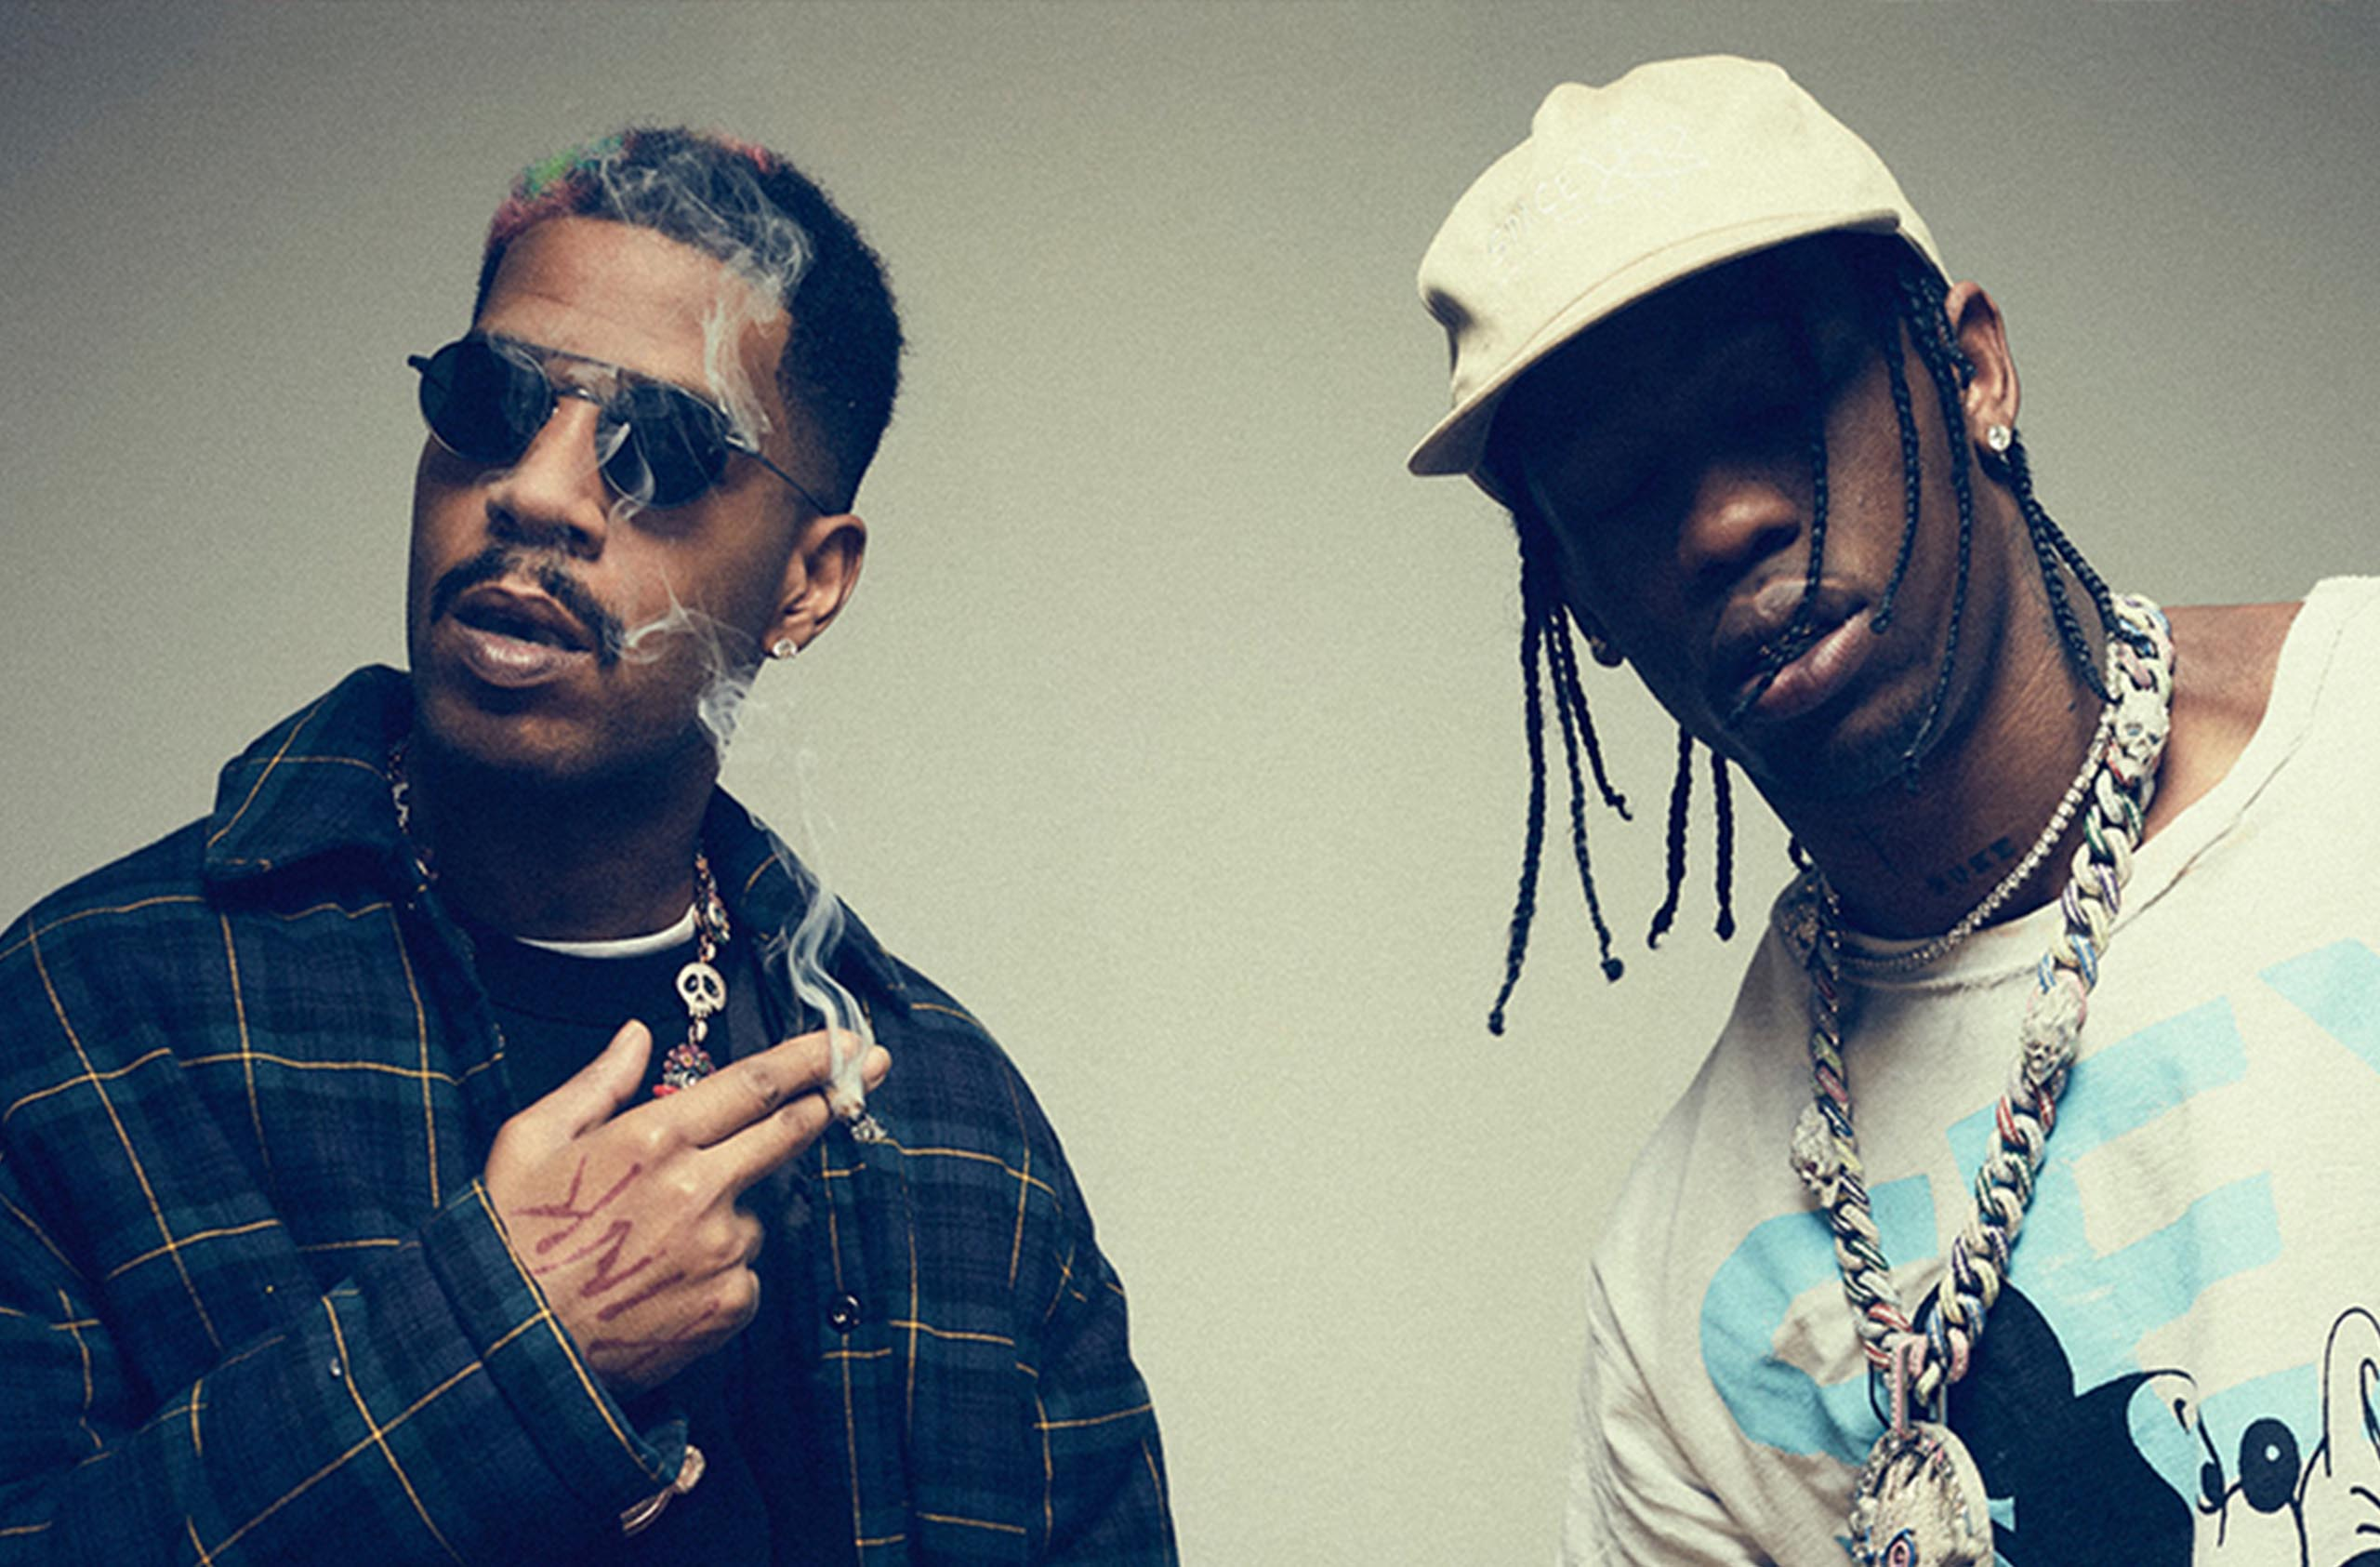 Kid Cudi and Travis Scott are working on a joint project